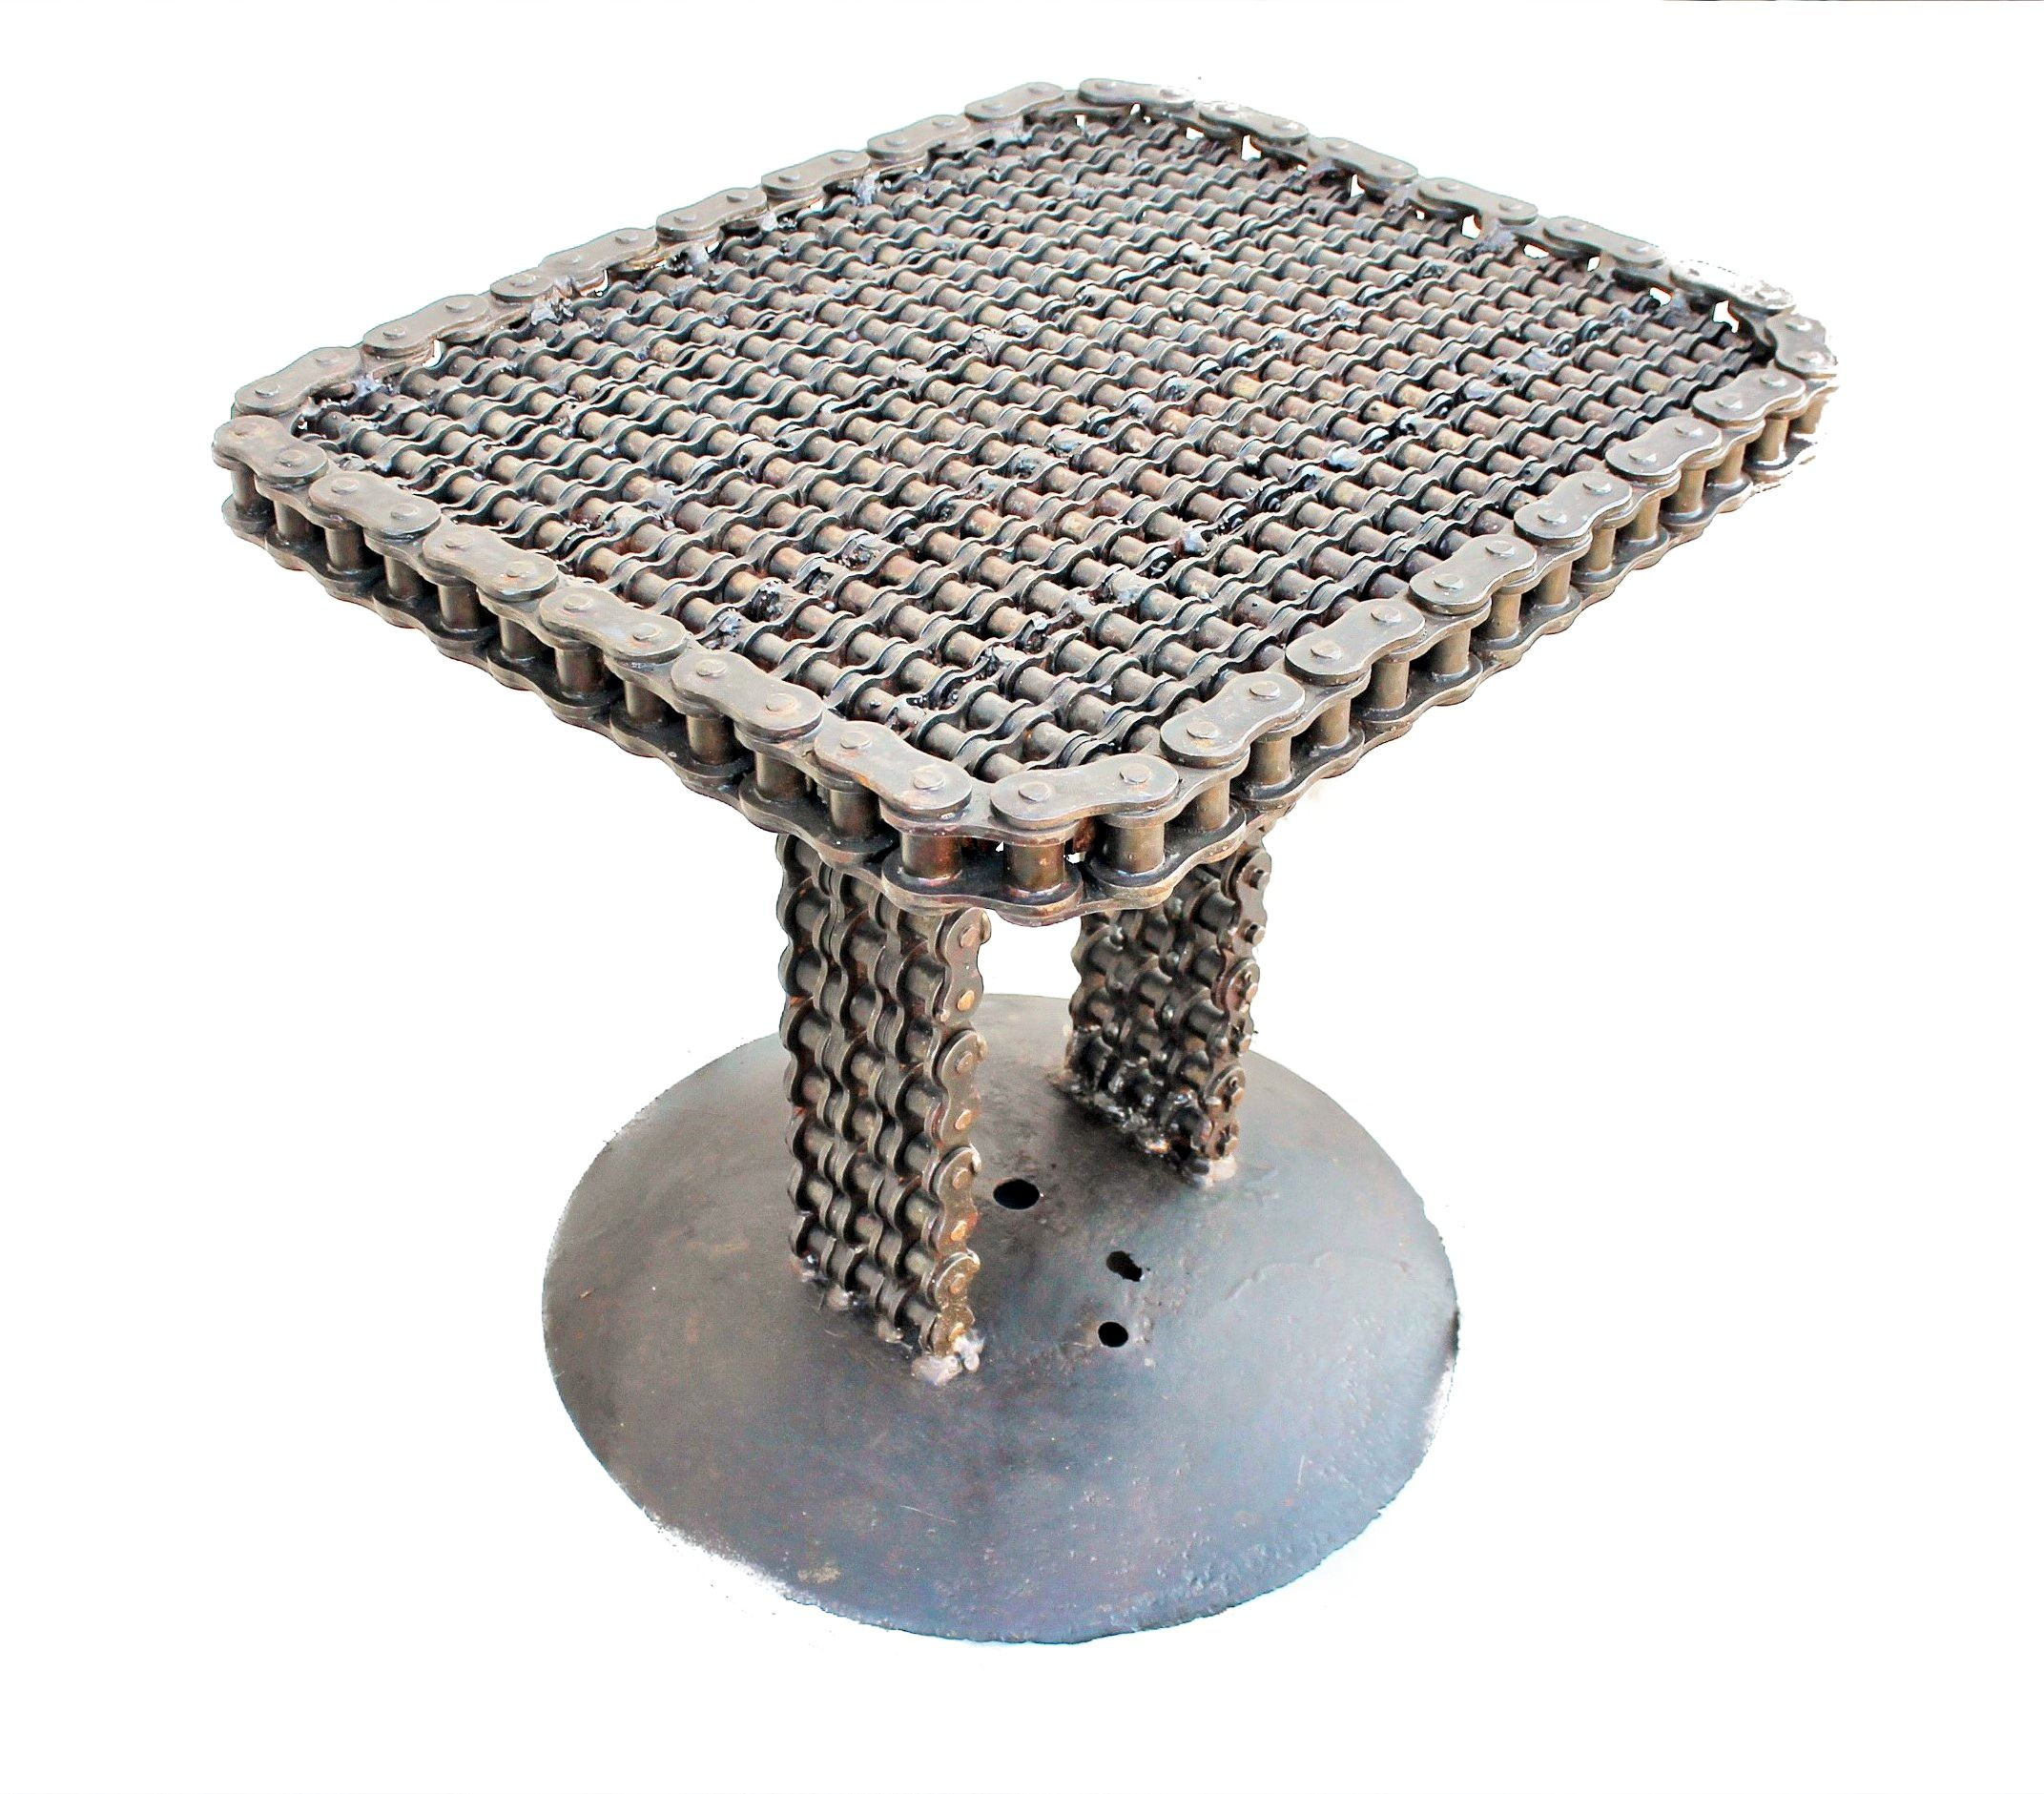 Furniture Unique: Welded Recycled Metal End Tables, Upcycled Side Table